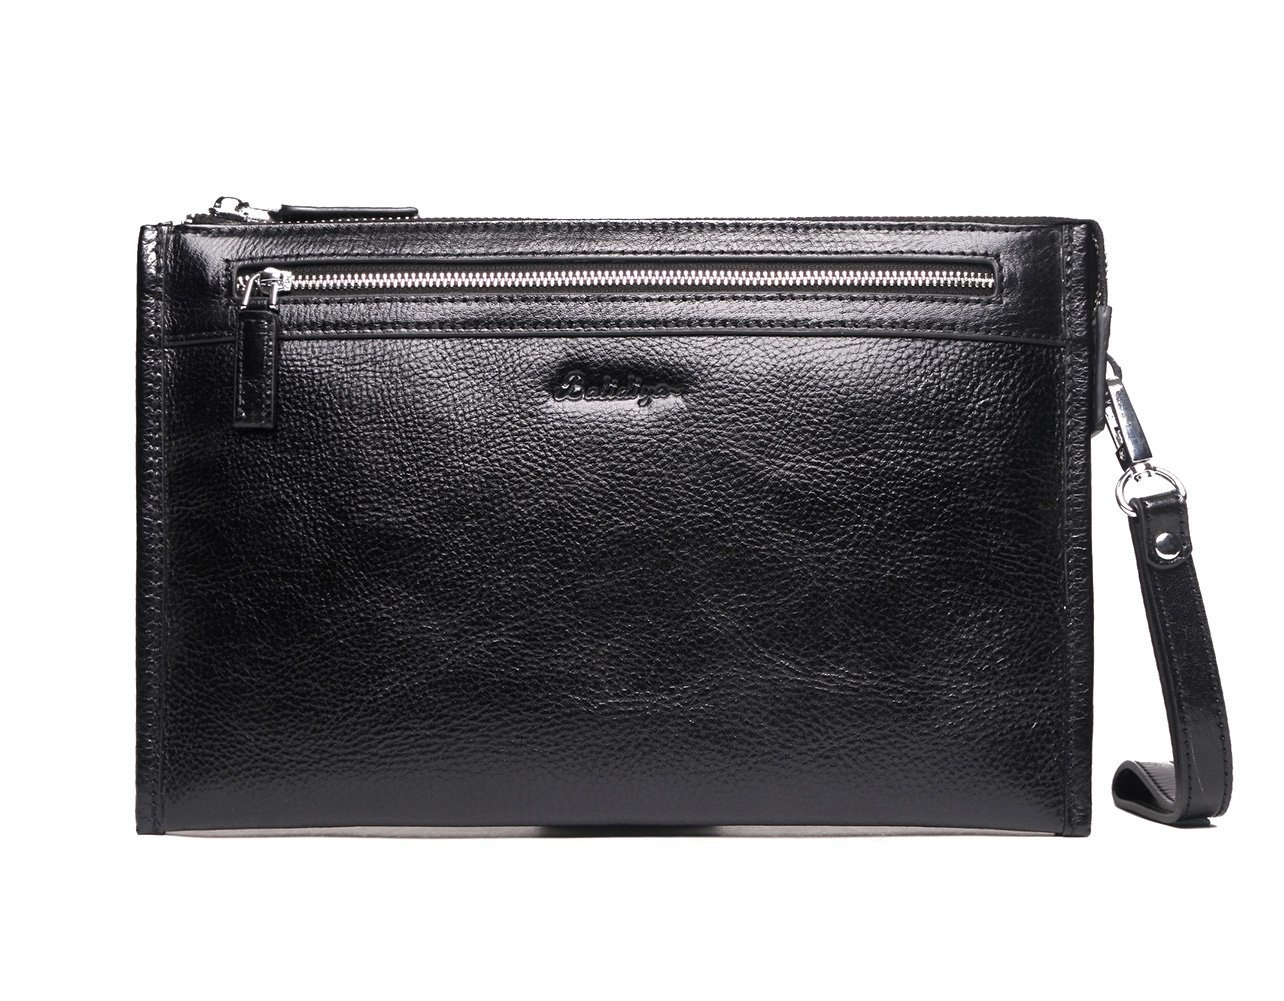 fe93a7e6b13e Mens Genuine Leather Clutch Bags Vintage Retro Chequebook Handbag Large Zip  Wristlet Purse Credit Card Holder Black Wax Leather for Office Casual Ipad